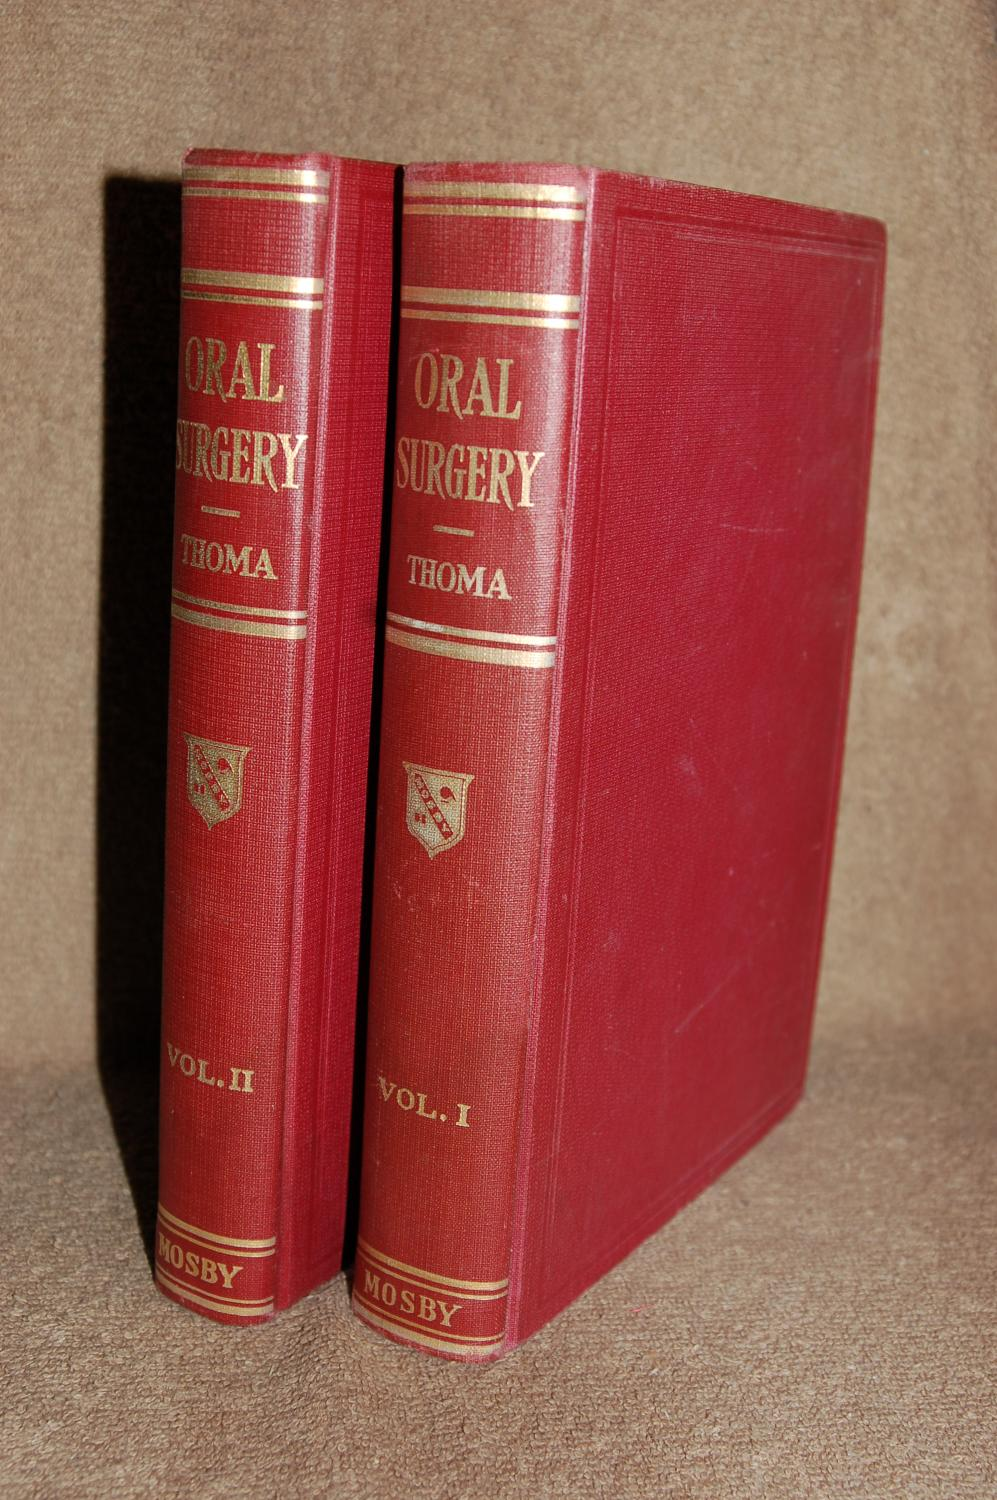 Oral Surgery (Two Volumes)